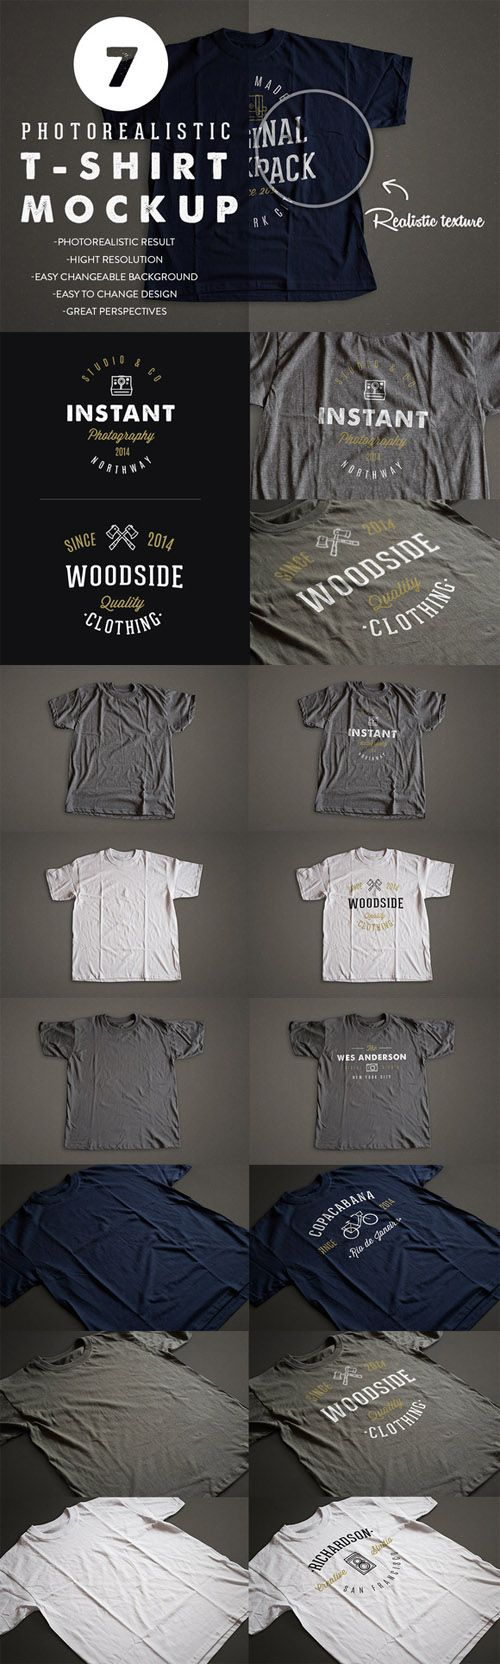 Download Creativemarket Photorealistic T Shirt Mockup 2 68645 Nulled Php Download Cloned And Nulled Php Scripts Shirt Mockup Design Graphic Design Mockup